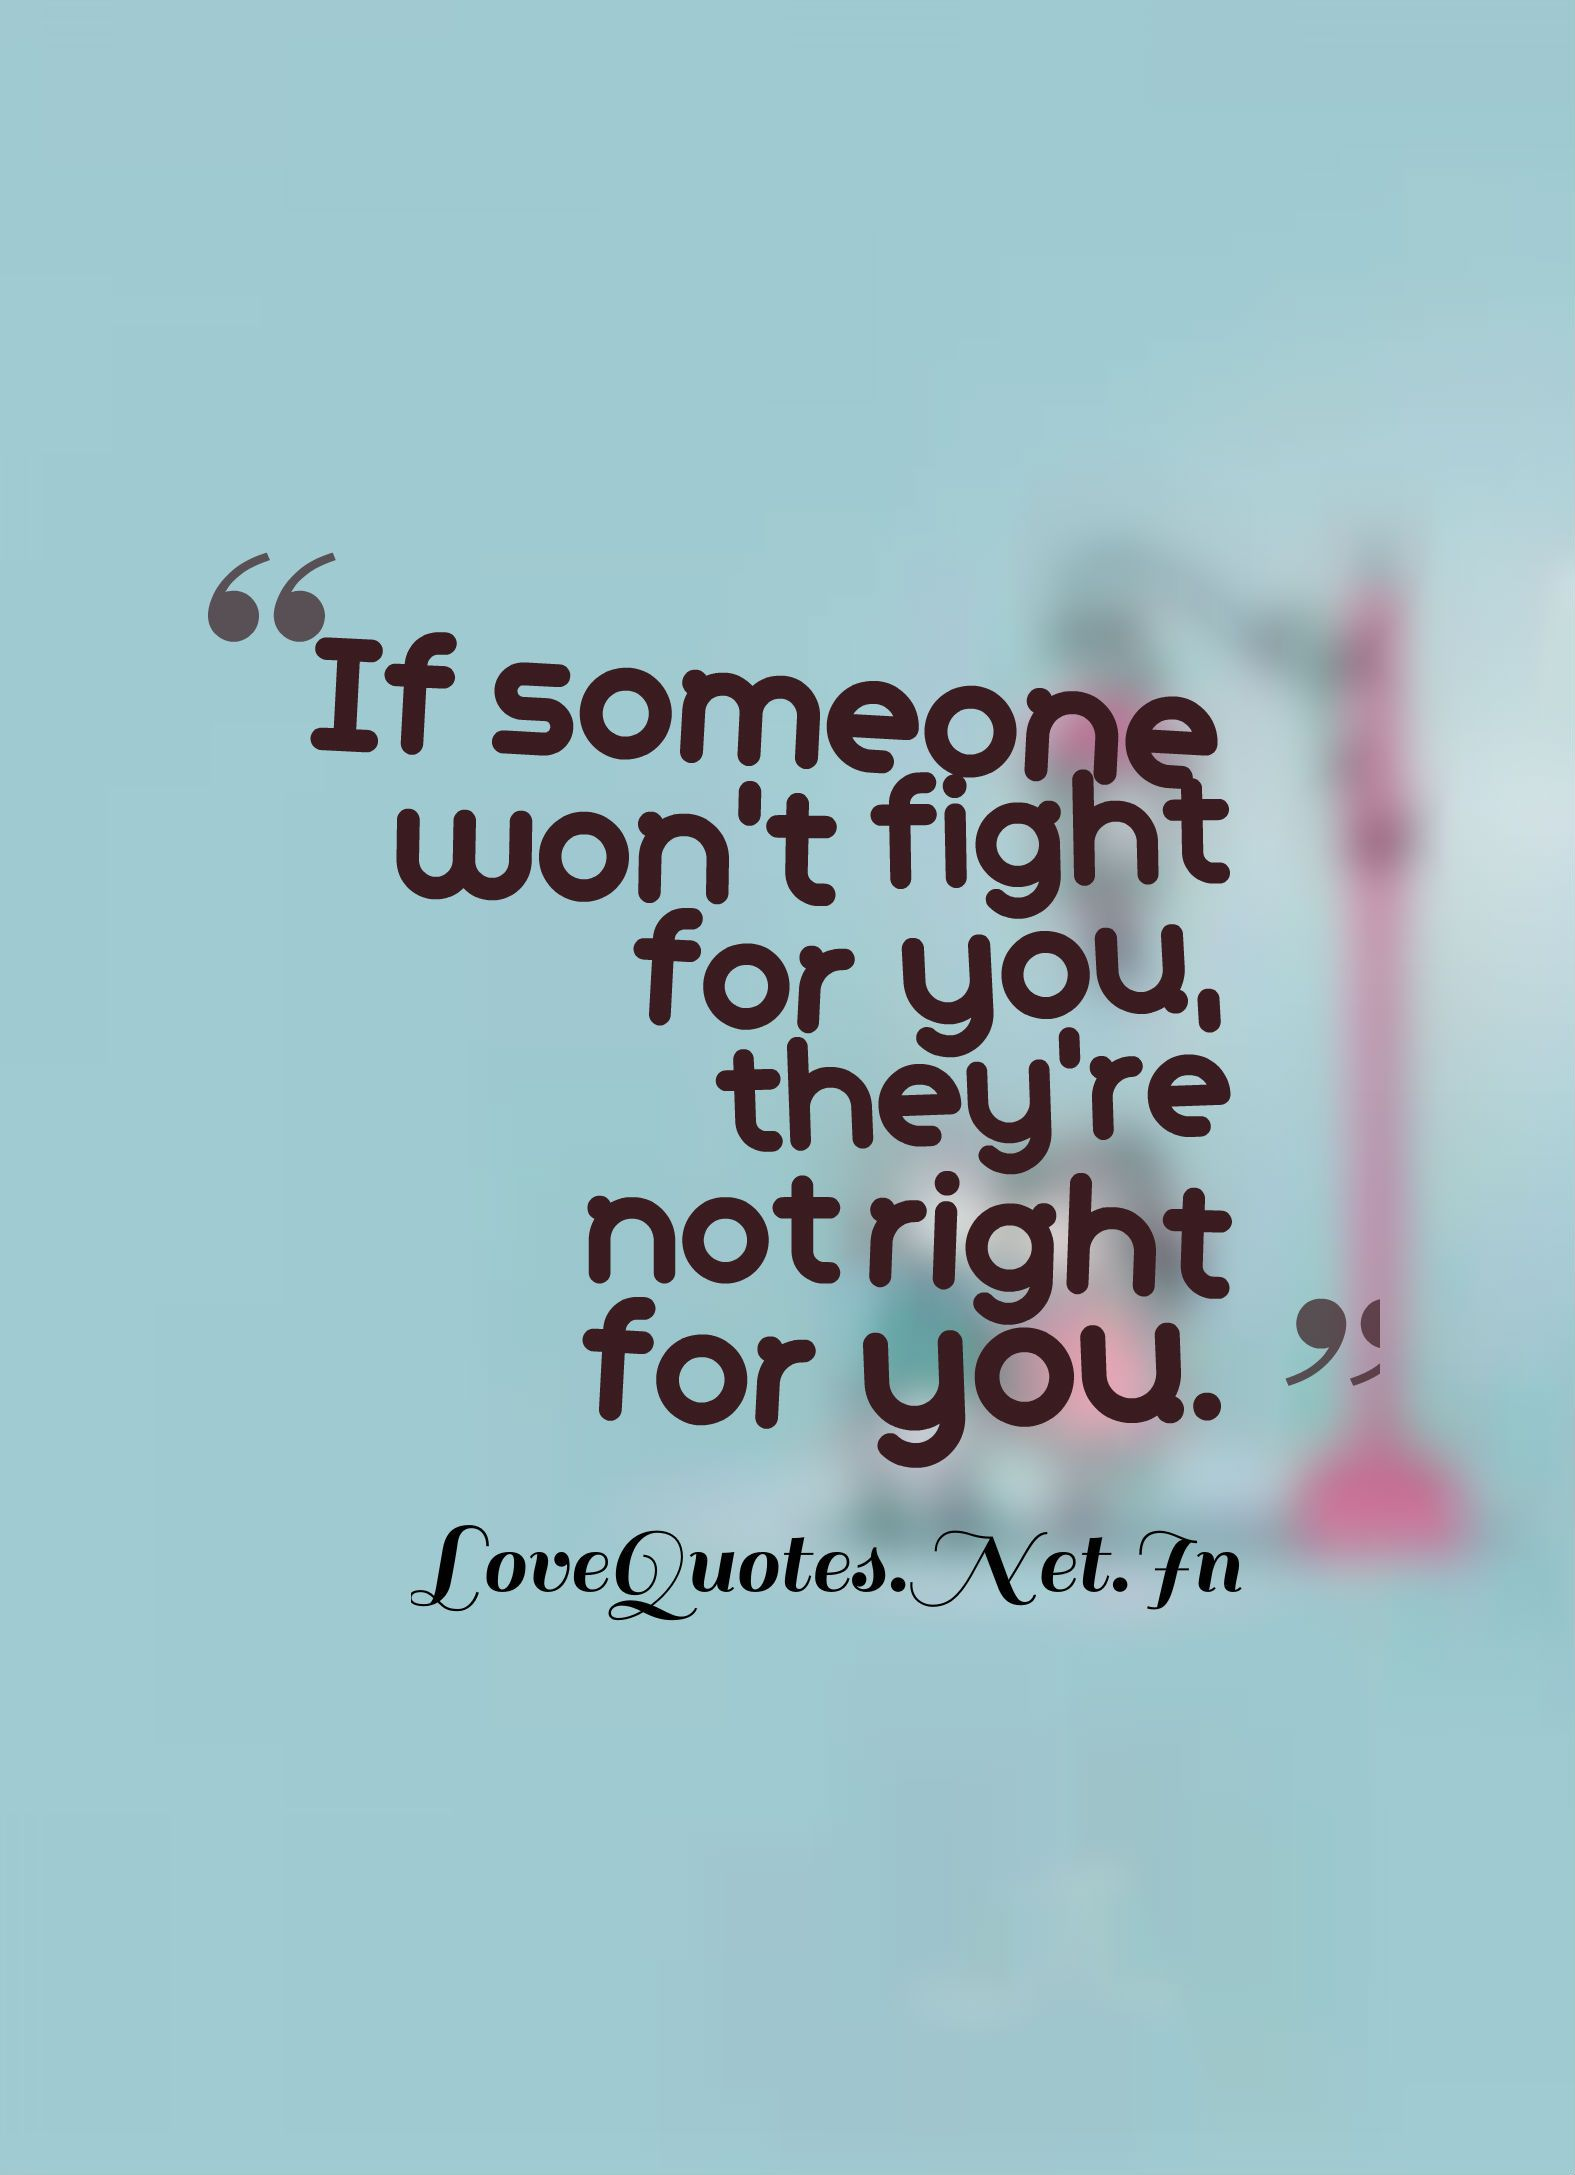 If someone won t fight for you they re not right for you · Perfect SayingsLove QuotesAmazing